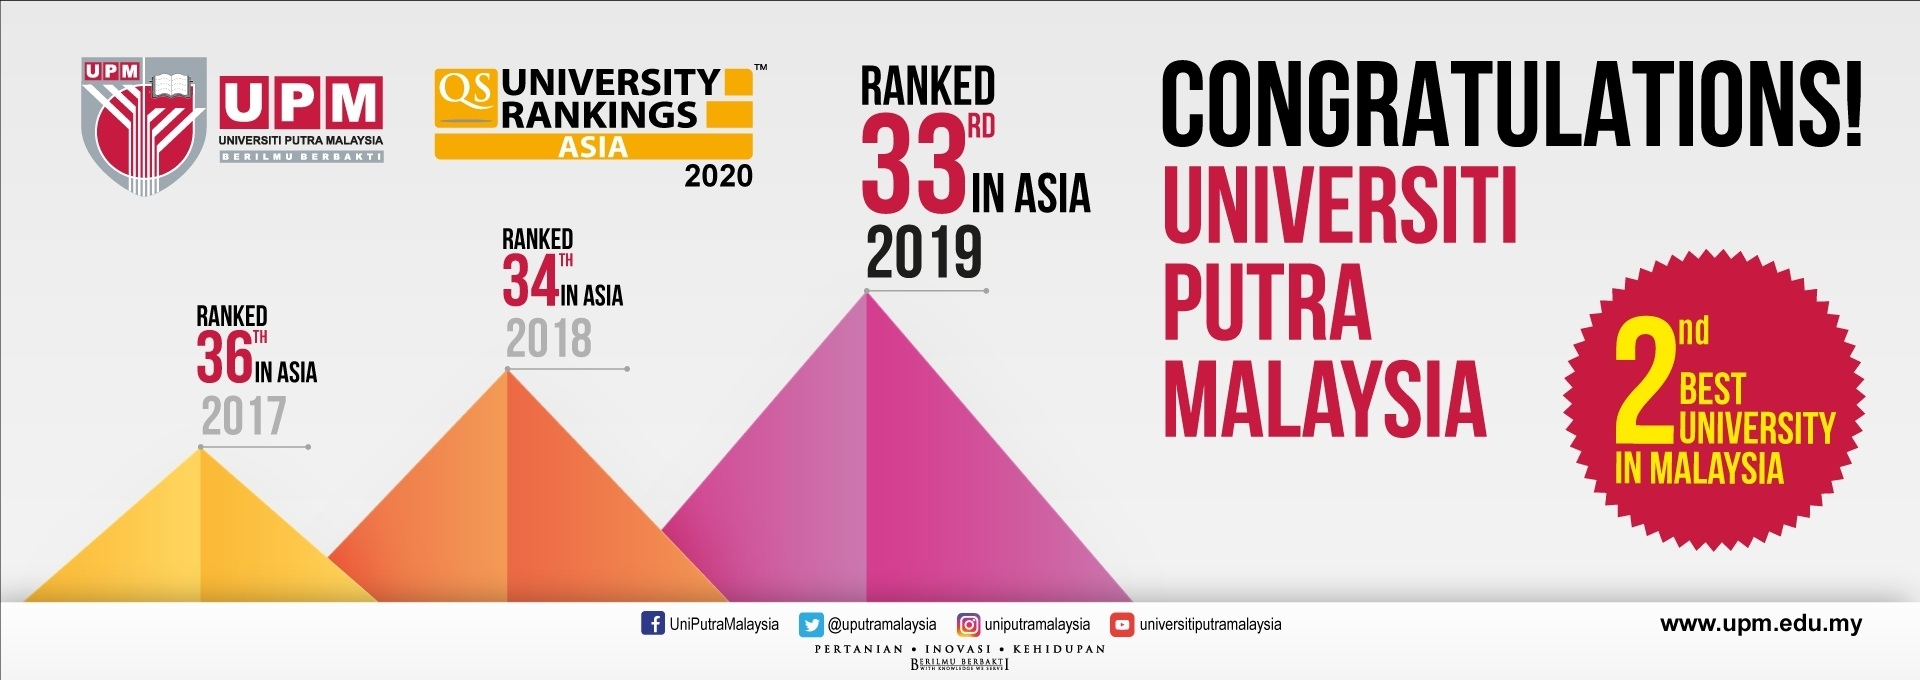 2nd Best University in Malaysia